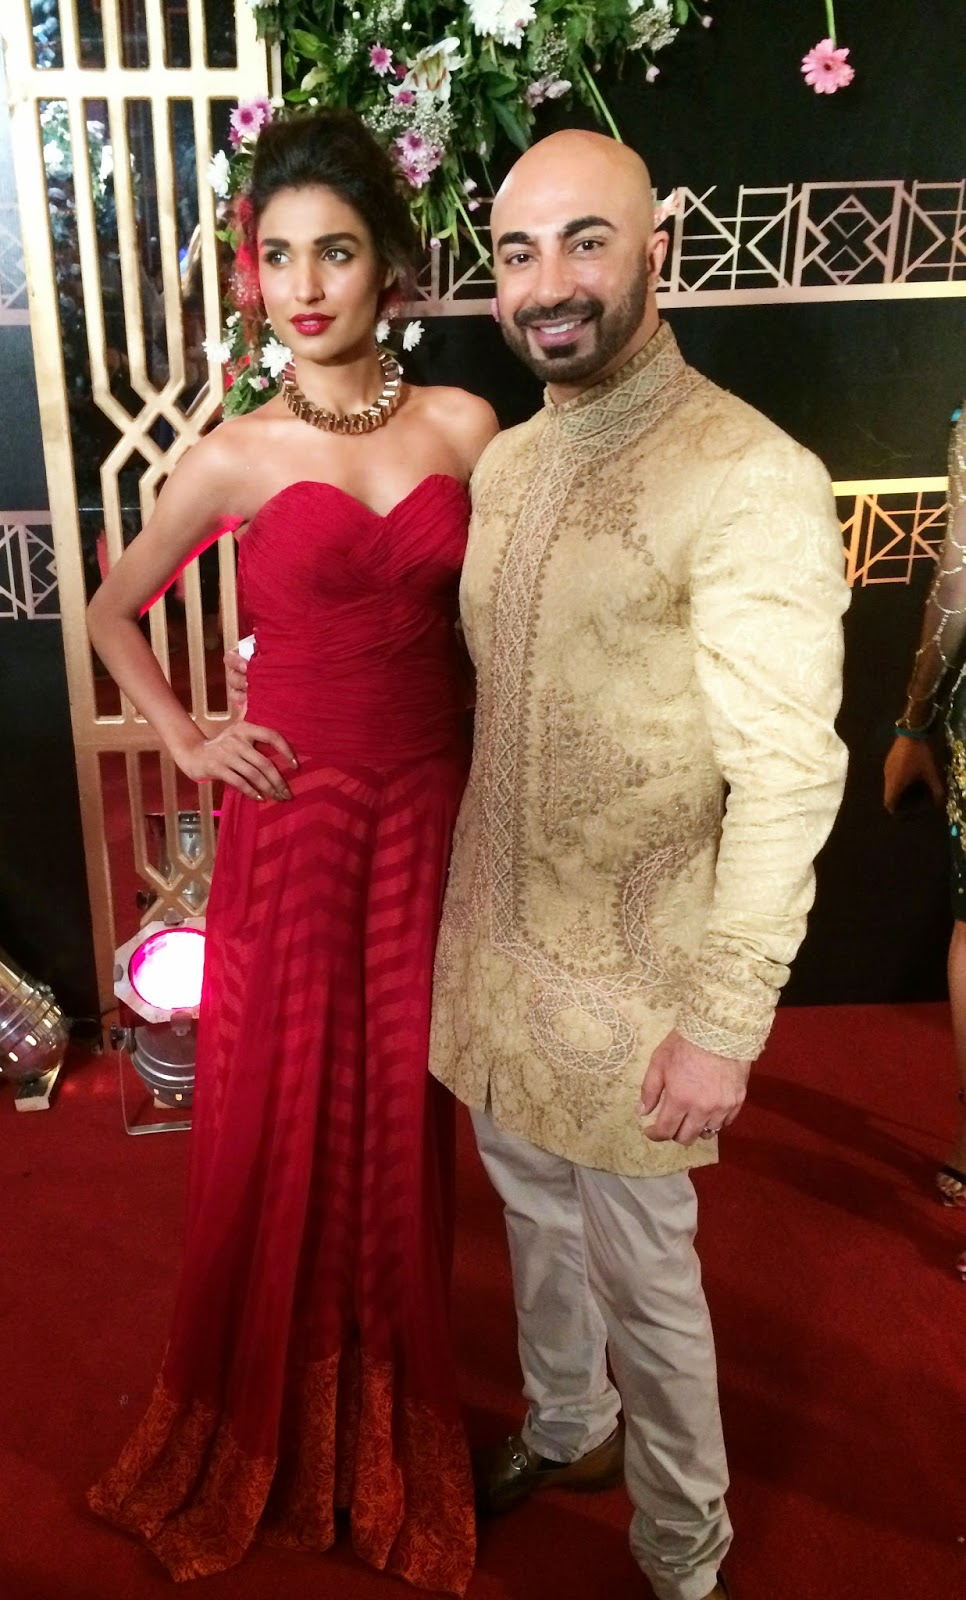 Designer HSY and Jury's Choice Best Actress Winner Amna Ilyas in a gown from HSY's Venom collection